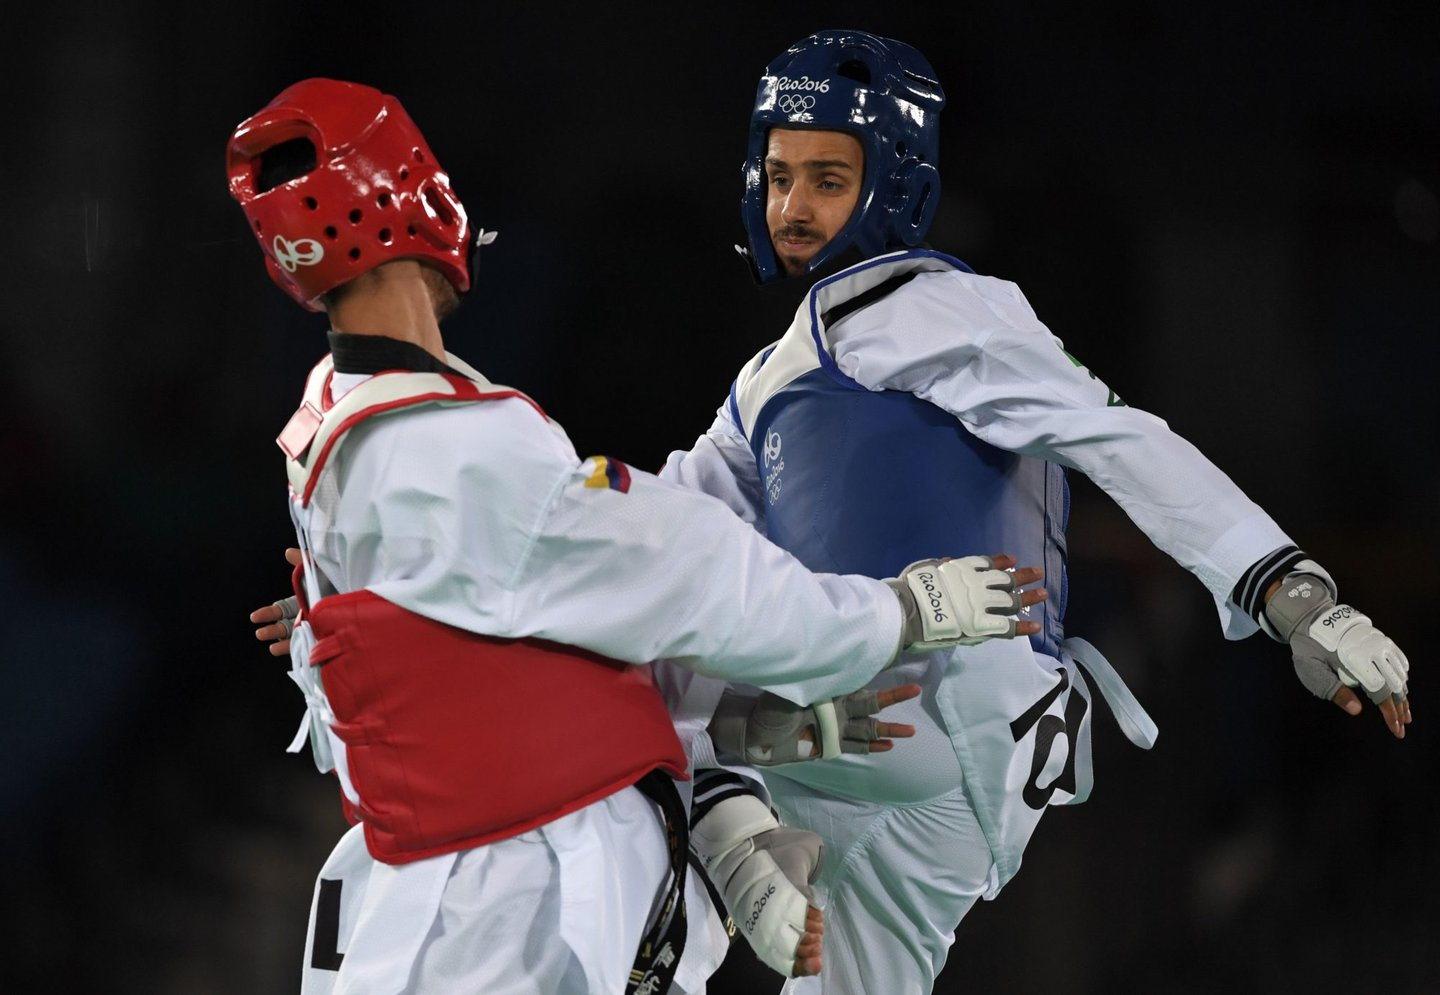 Portugal's Rui Braganca (R) competes against Colombia's Oscar Luis Munoz Oviedo during their men's taekwondo qualifying bout in the -58kg category as part of the Rio 2016 Olympic Games, on August 17, 2016, at the Carioca Arena 3, in Rio de Janeiro. / AFP / Ed JONES (Photo credit should read ED JONES/AFP/Getty Images)